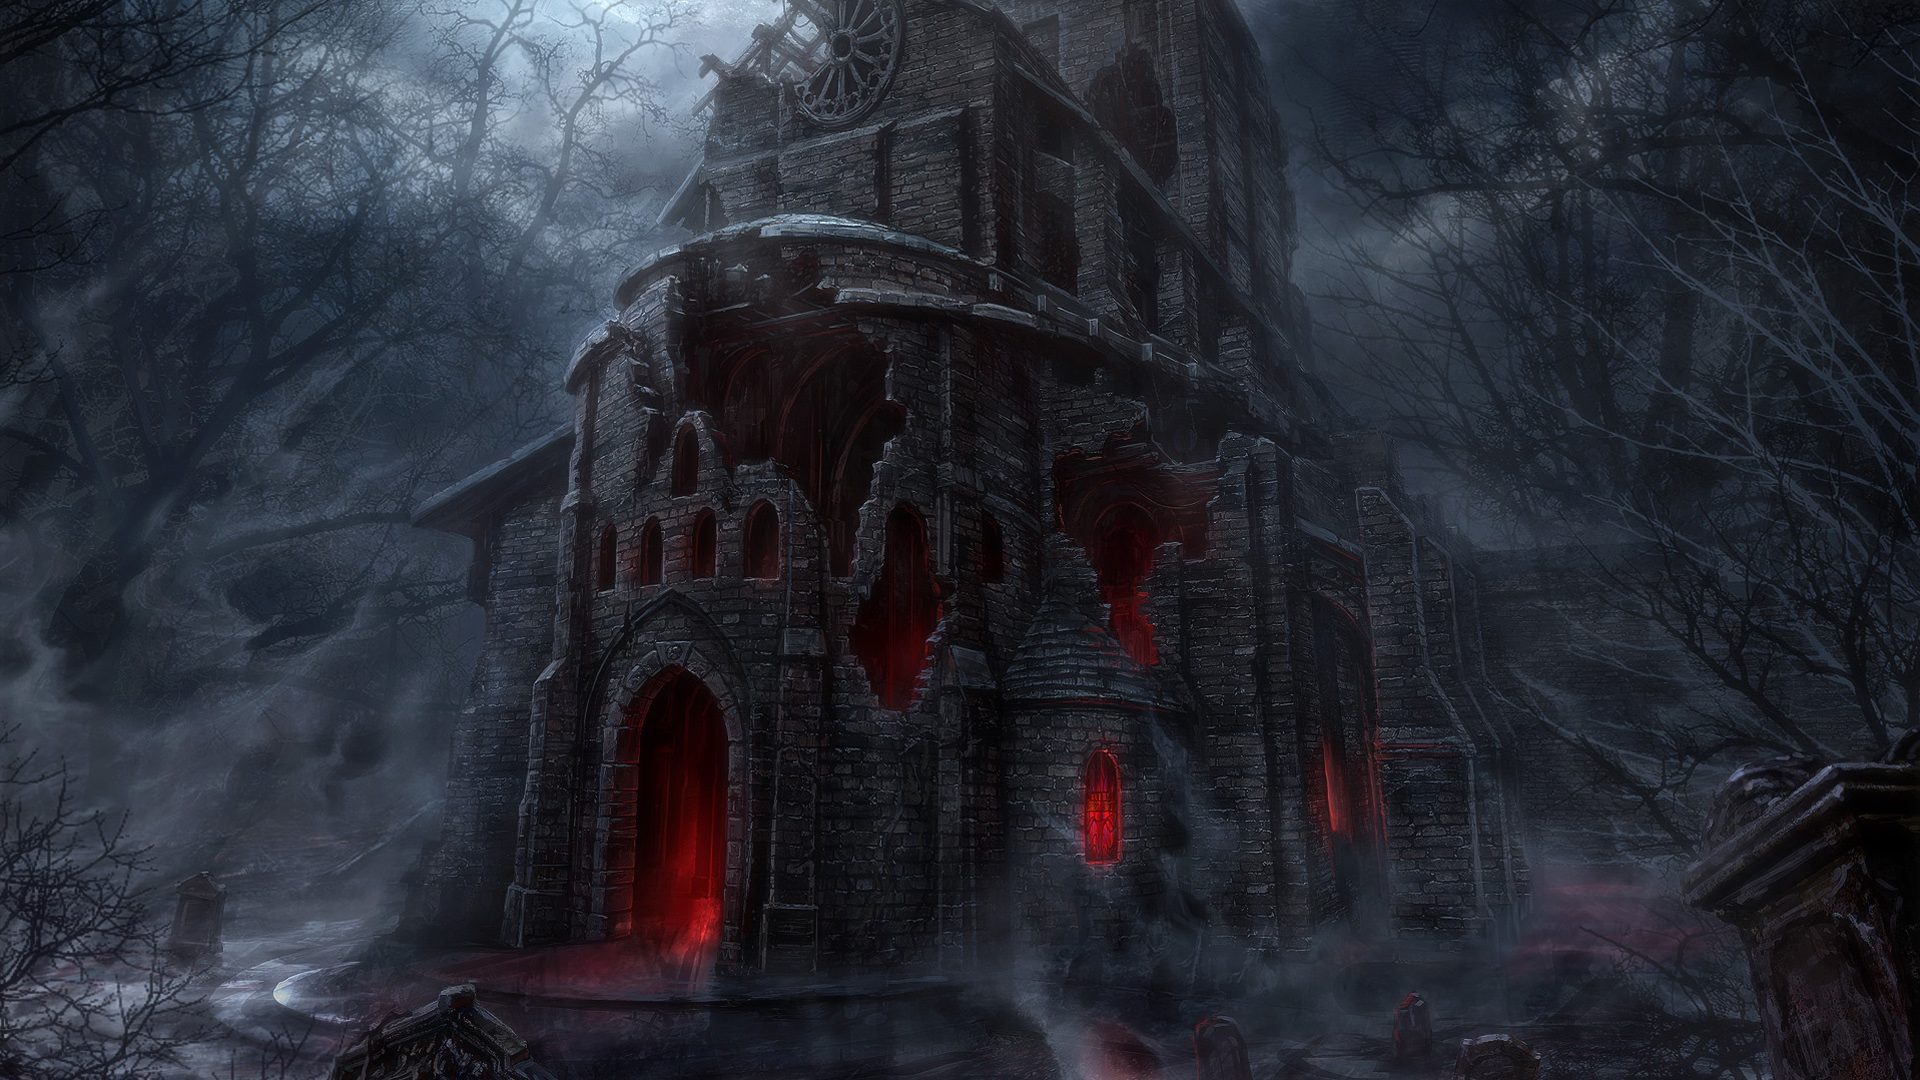 Image Detail For Dark Mysterious Hd Fantasy: Diablo III Best Quality HD Wallpapers